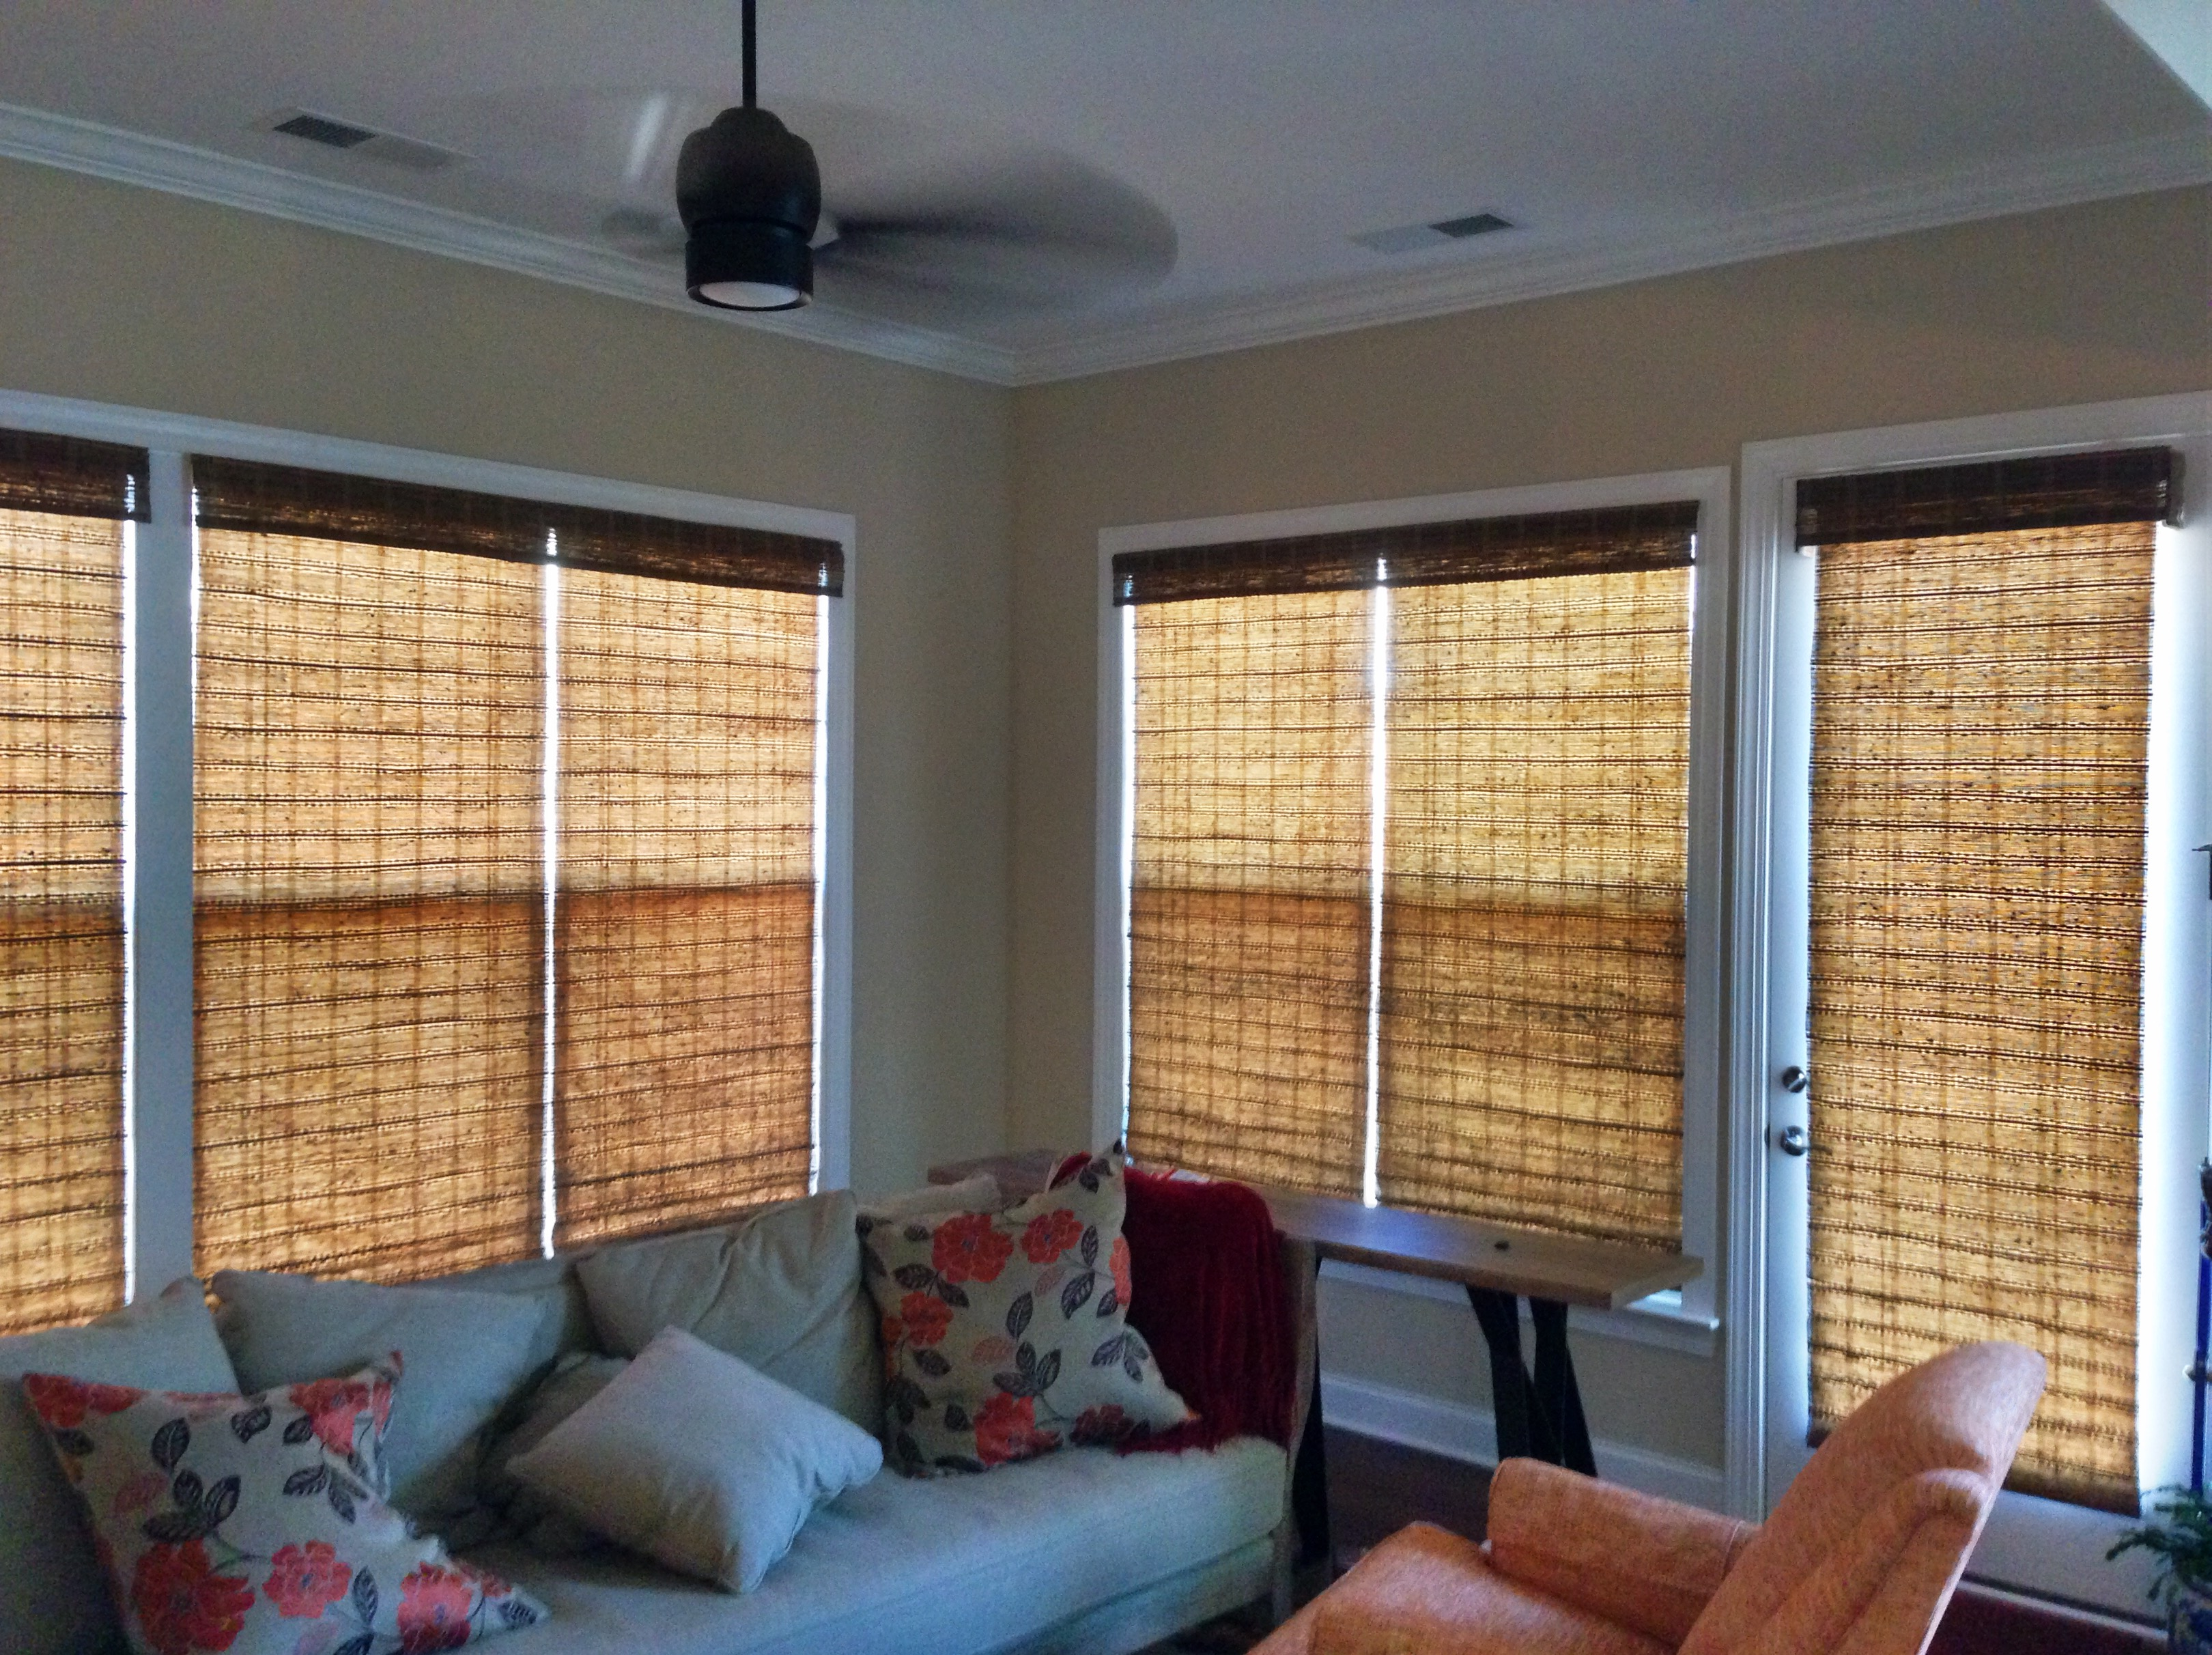 roi bali pattern roller with white cordless leaves doors modern curtain plantation shade roll radiance lowes bamboo shades wooden roman reading up depot china blinds home nook french solar silk for black blackout durable armchair window rod installati shutters levolor pinterest hardware